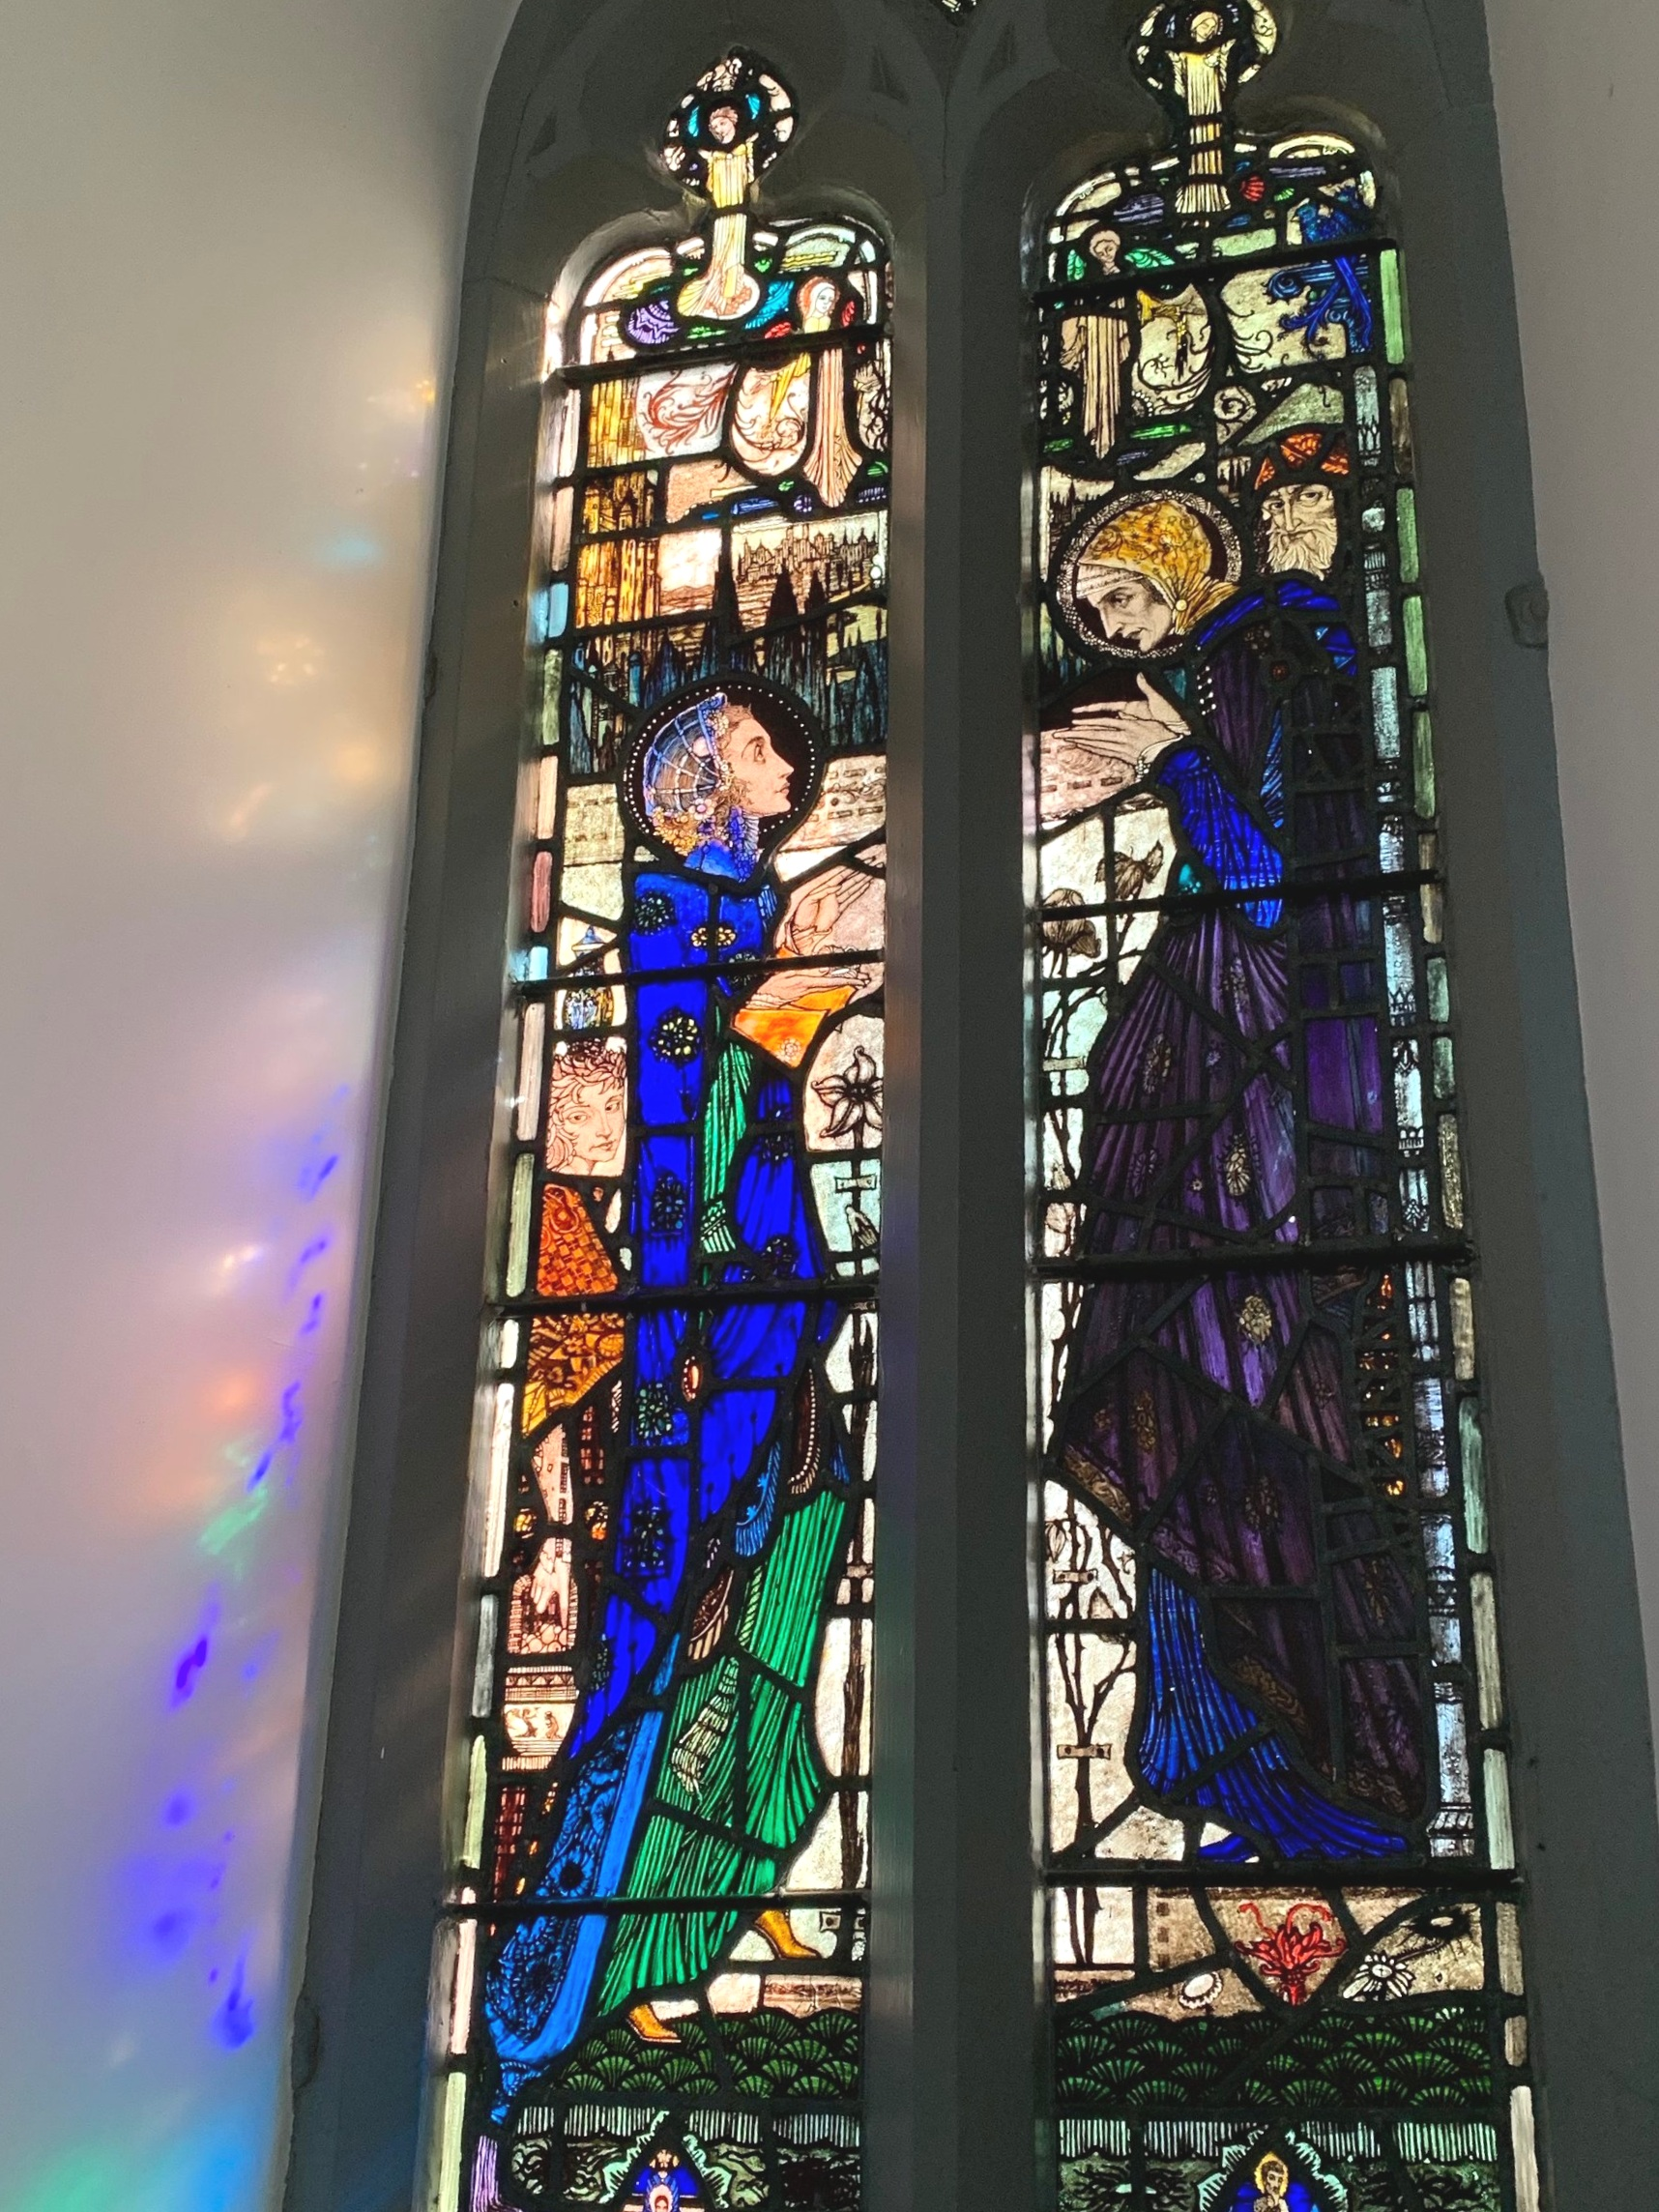 The Visitation, Sts. Peter and Paul, Ireland